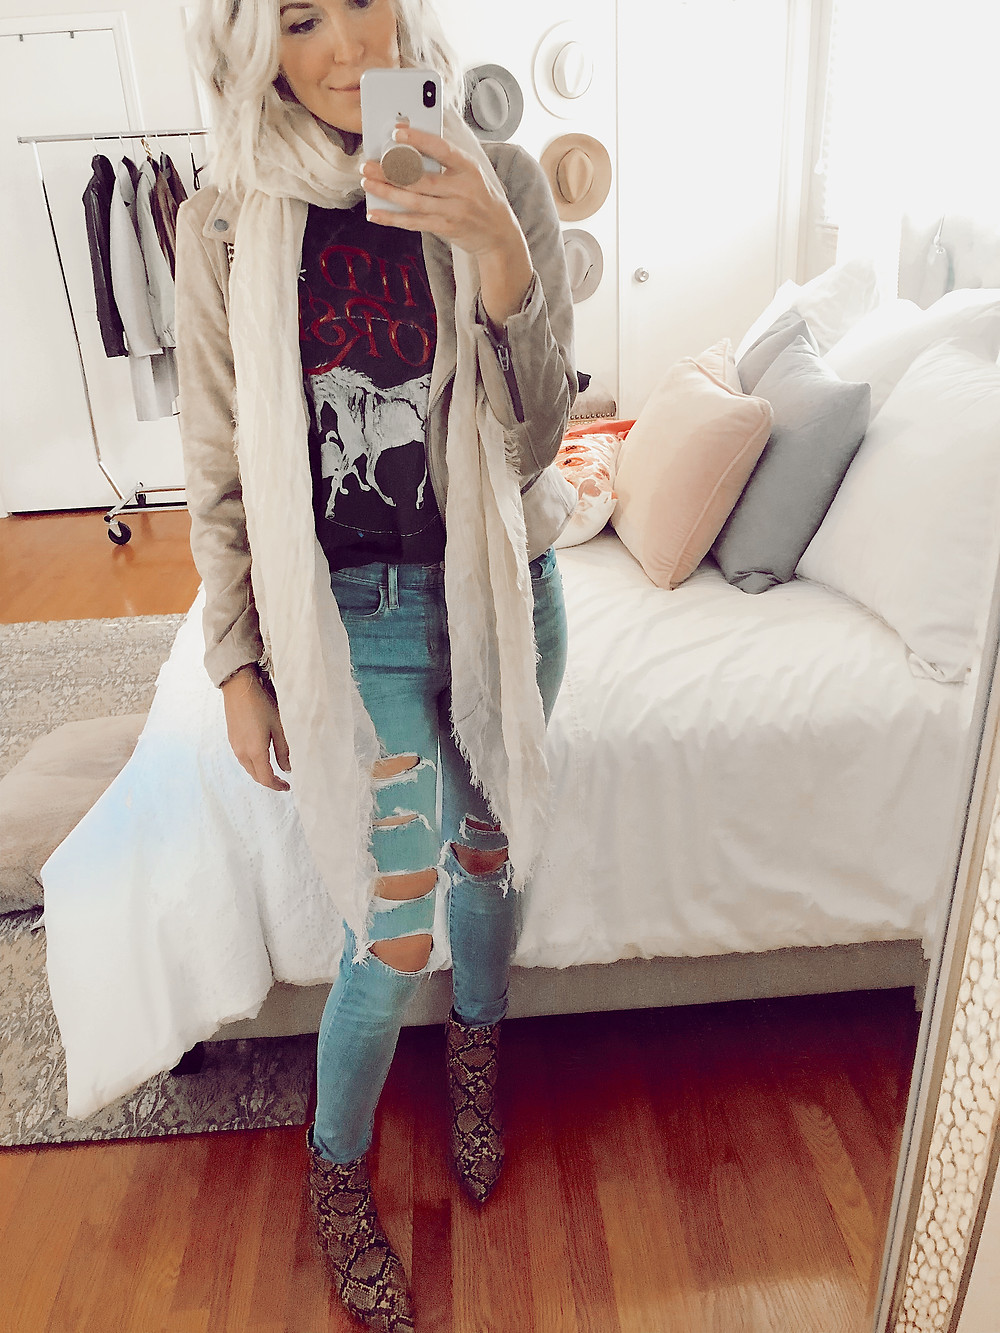 How to style snakeskin booties for fall, moto jacket and graphic tee and scarf, fall casual outfit ideas, style tips for women, fashion blog